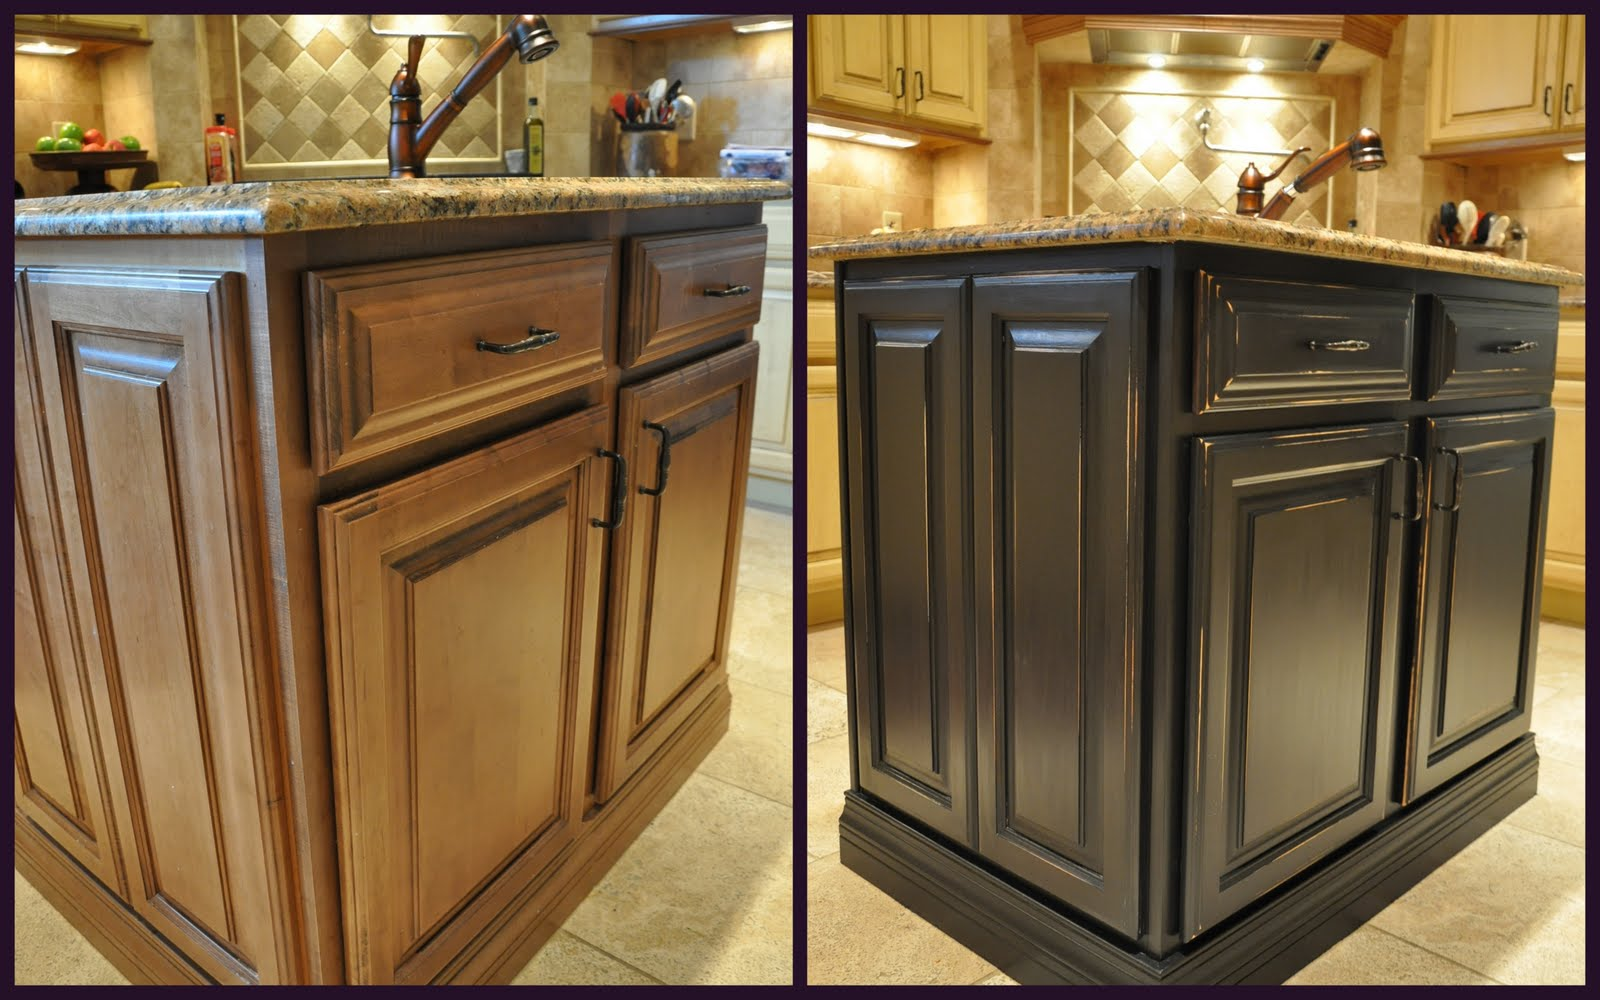 painted kitchen island revea distressed kitchen cabinets Painted Kitchen Island Reveal